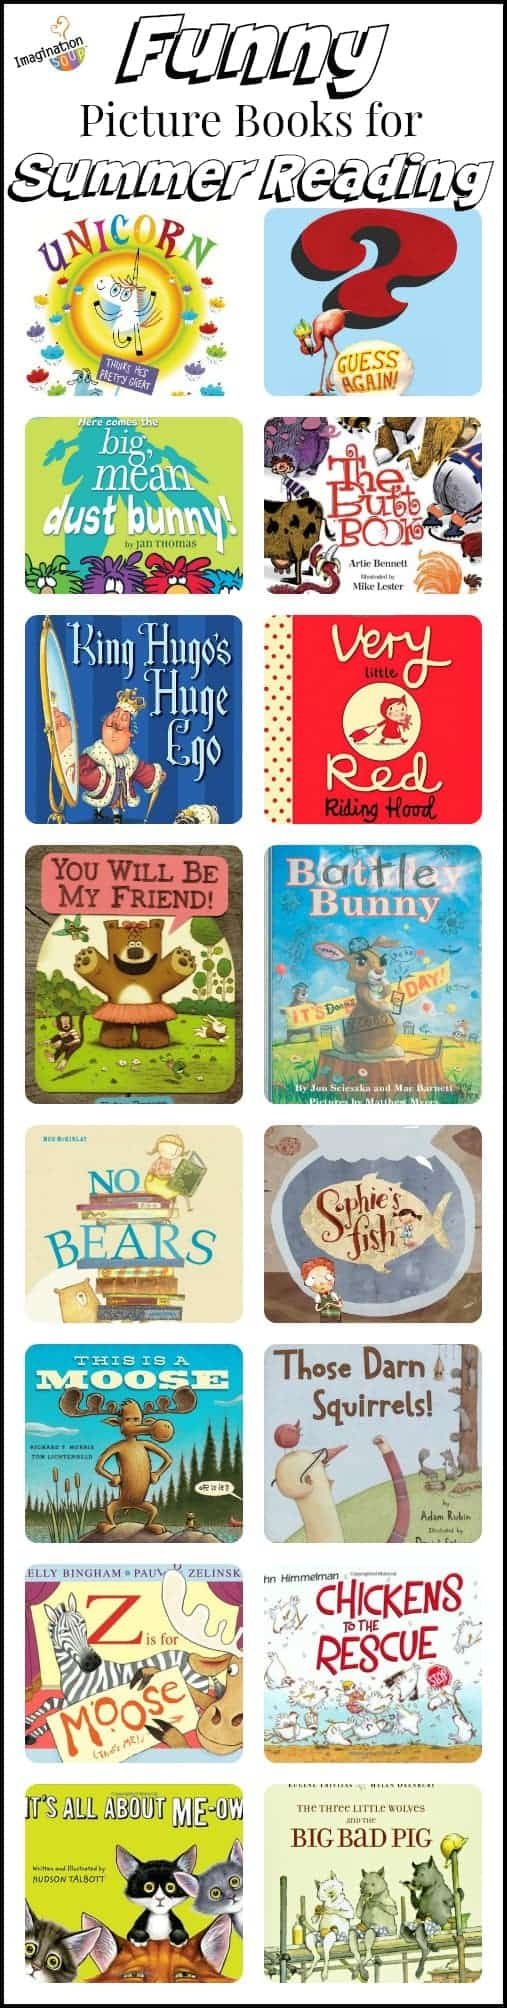 Funny picture books summer reading list